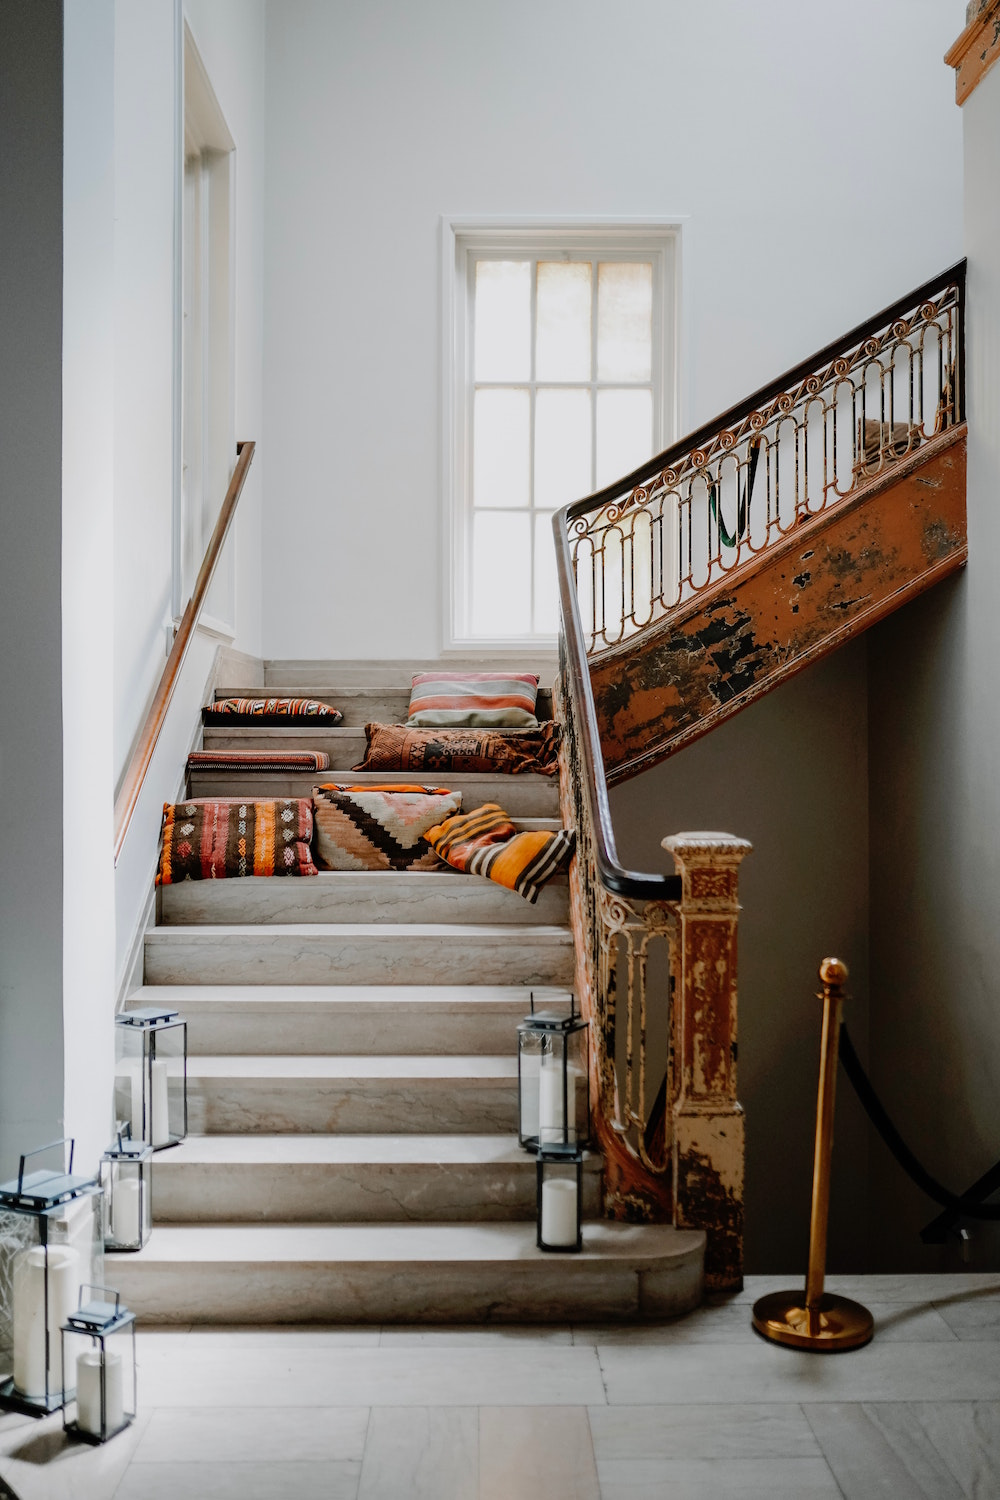 Image of rustic staircase